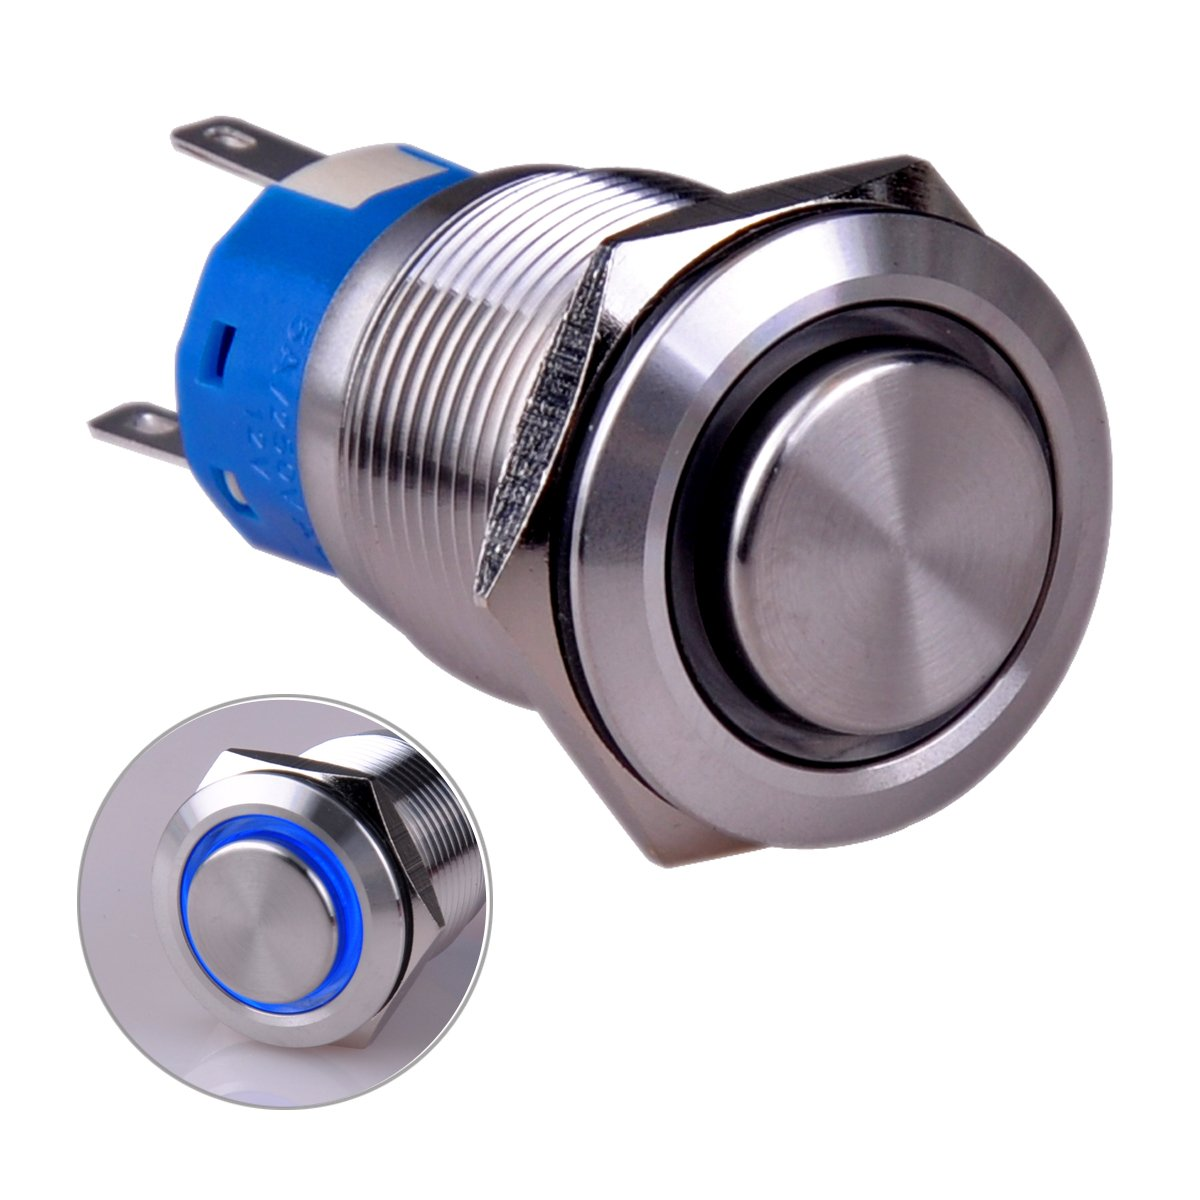 Taien Momentary Push Button Switch 19mm 3 4 1no1nc On Details About 3a 250v Off 1 Circuit Latching Silver Stainless Steel Shell With 12v Blue Led Light For Car Diy Automotive